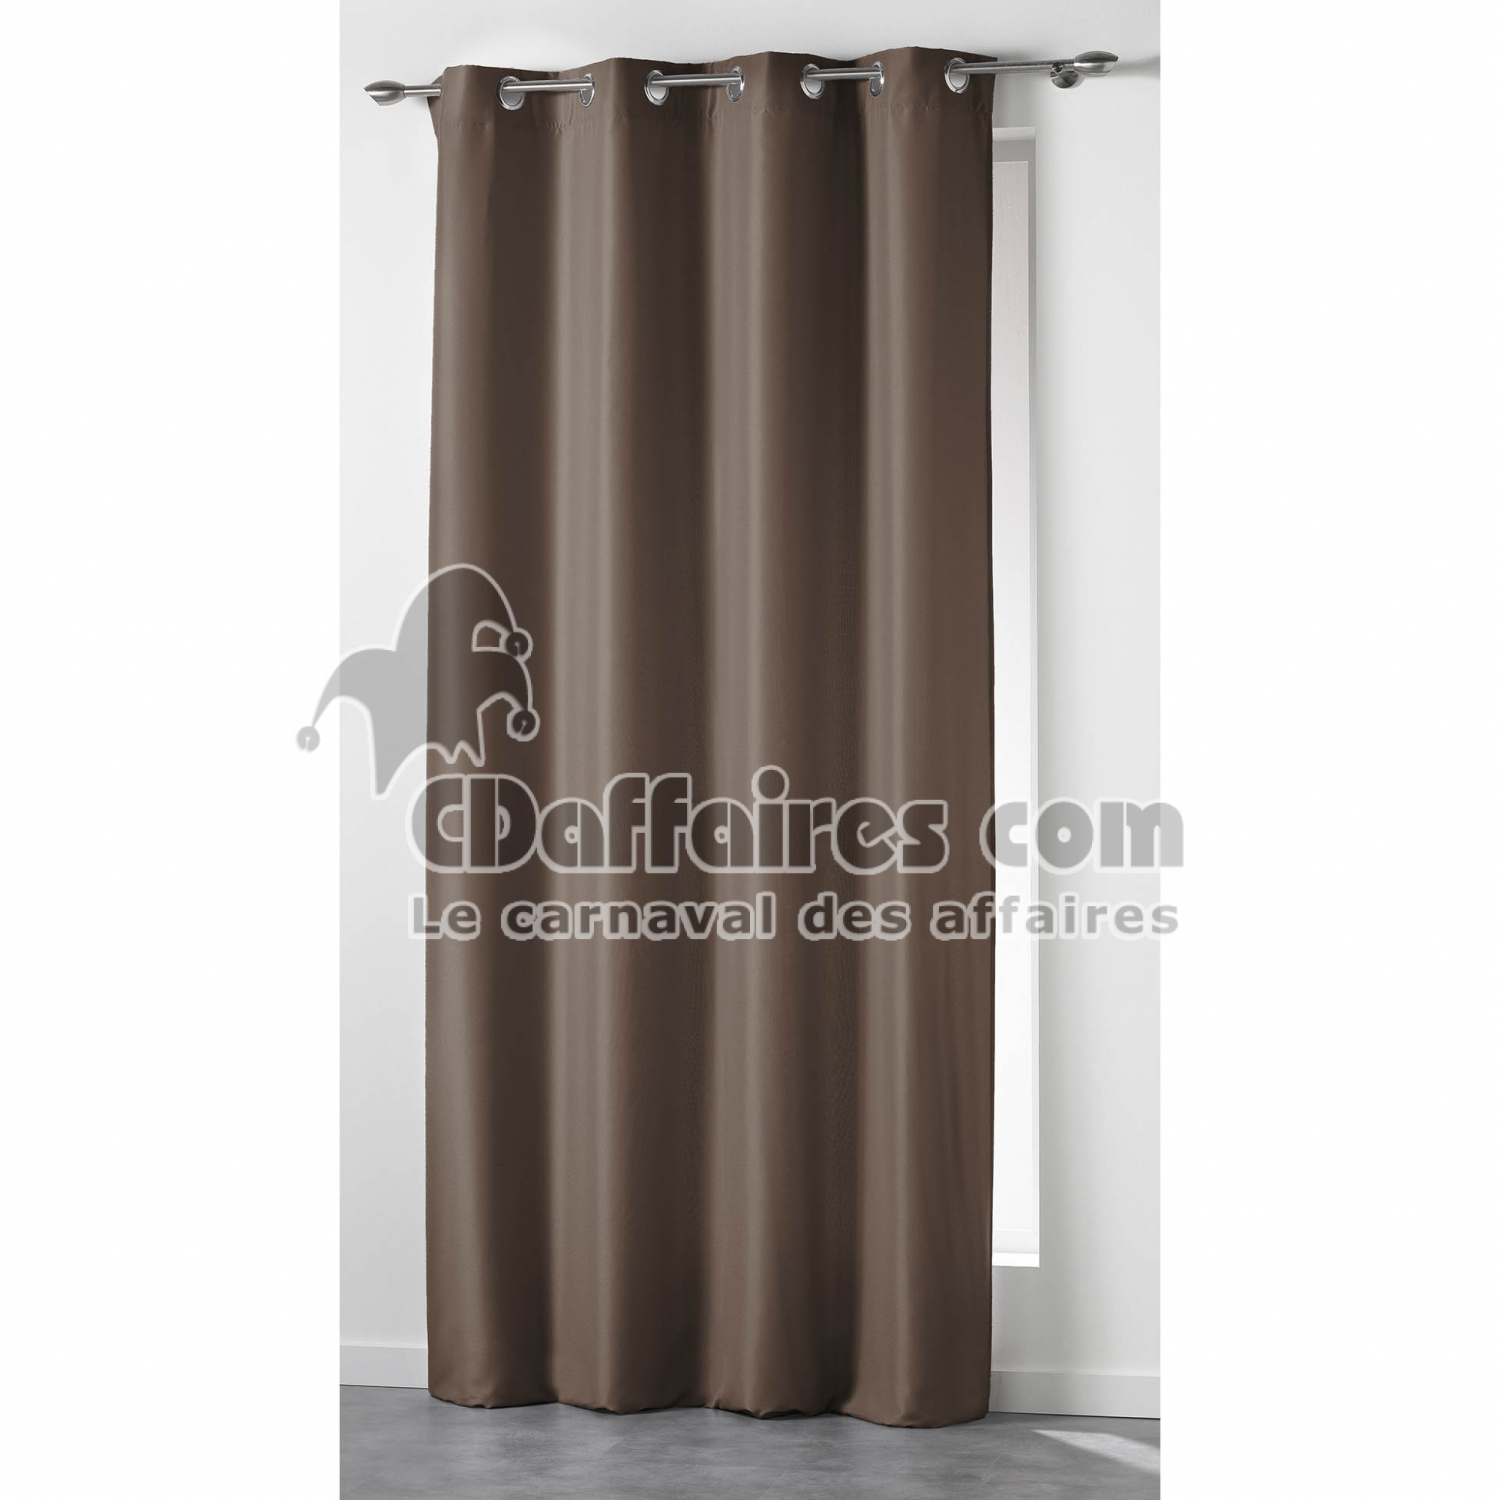 rideau a oeillets 140 x 260 cm isolant uni island taupe cdaffaires. Black Bedroom Furniture Sets. Home Design Ideas